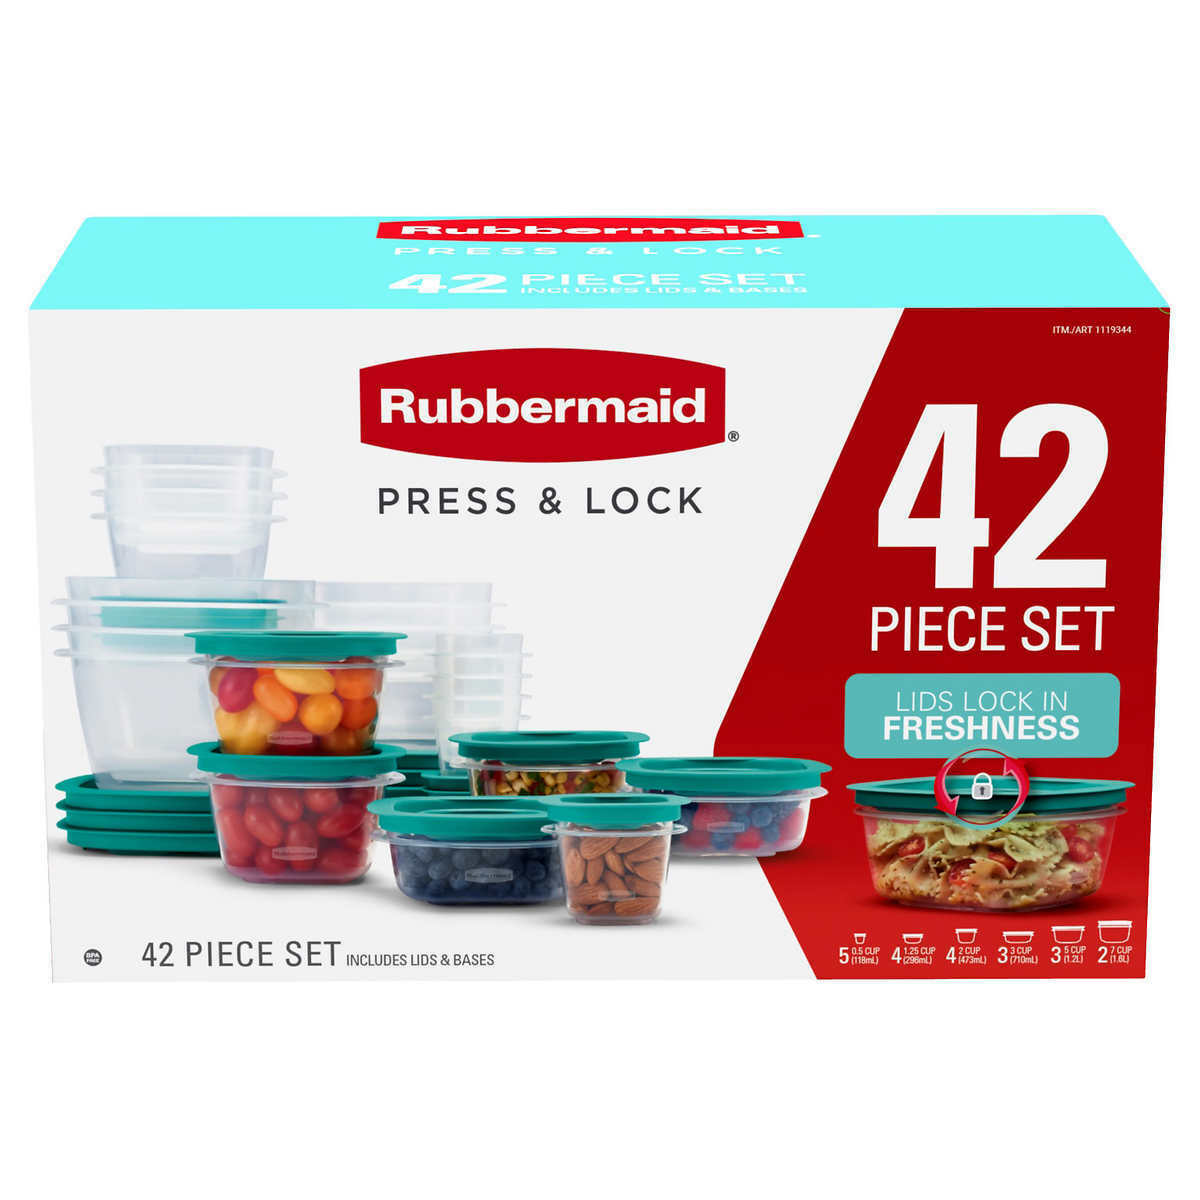 RUBBERMAID PRESS AND LOCK 42 PIECE EASY FIND LID CONTAINERS SET 199 NEW 1